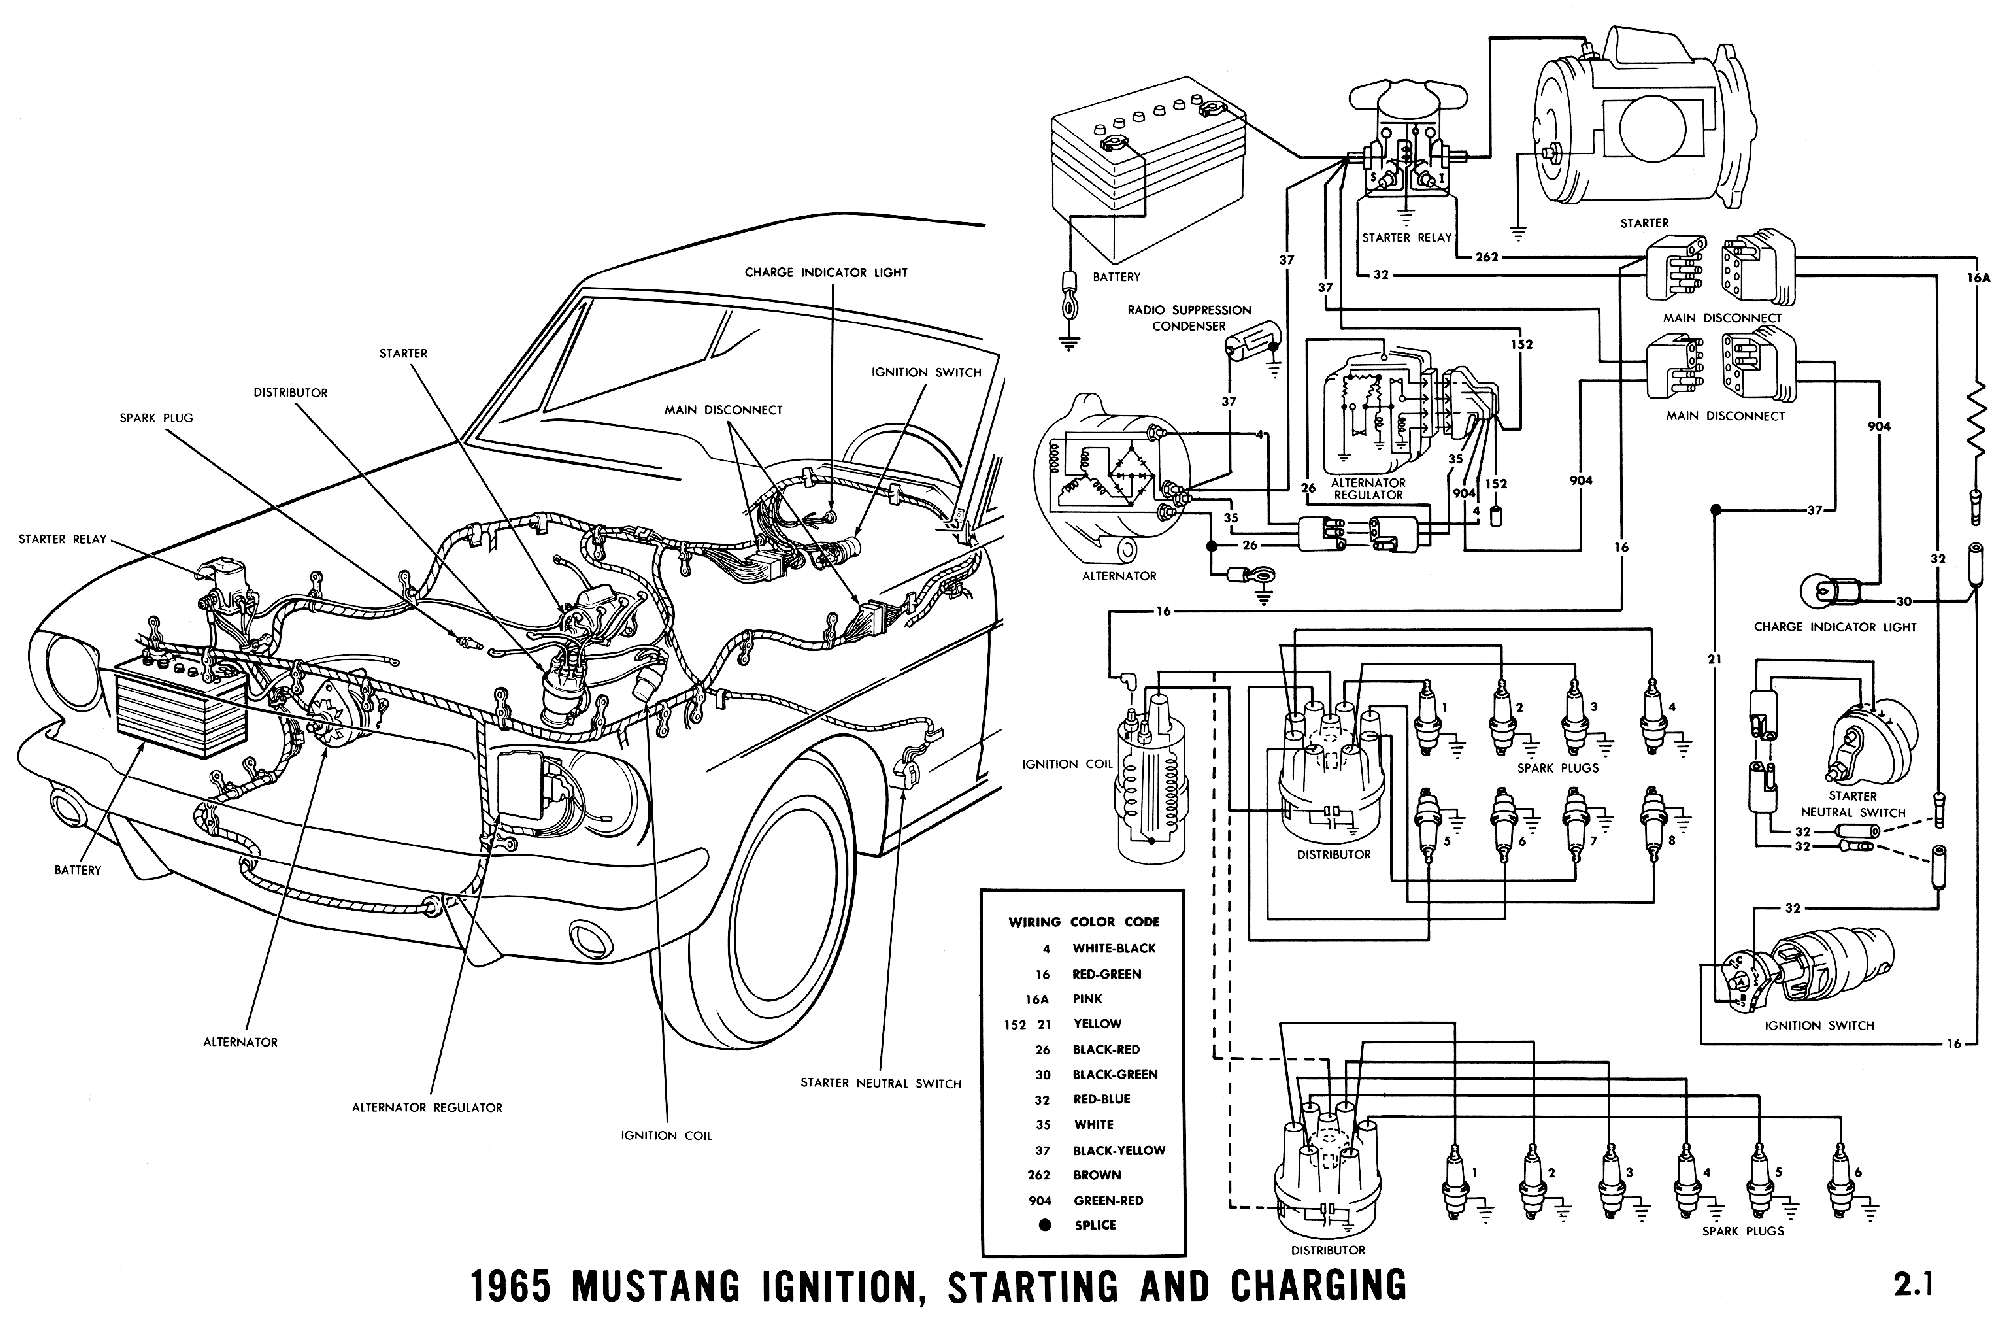 68 Mustang Fuse Box Location Wiring Diagram Data 86 1969 Ford Schematic Name 1968